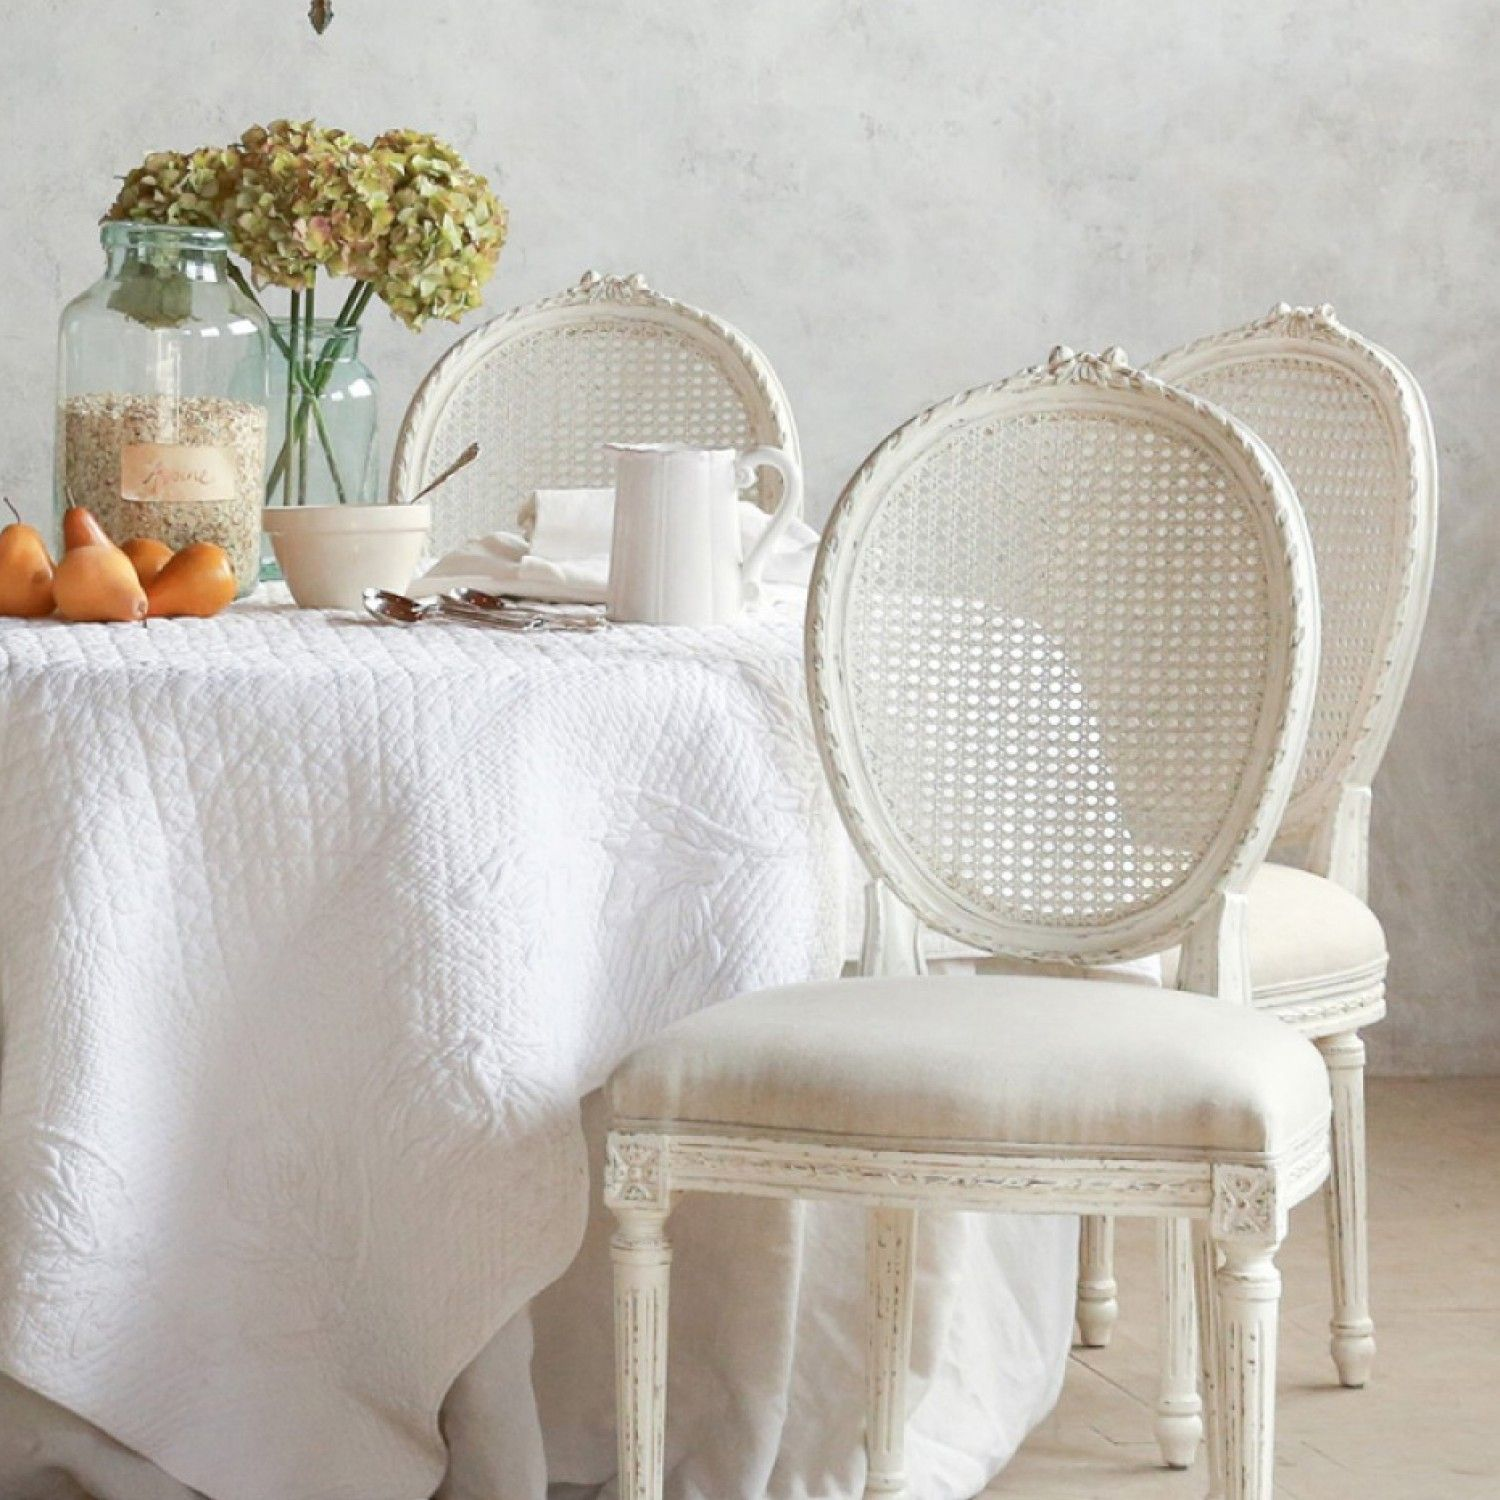 shabby chic chair best toddler and table set a lovely french inspired dining space with